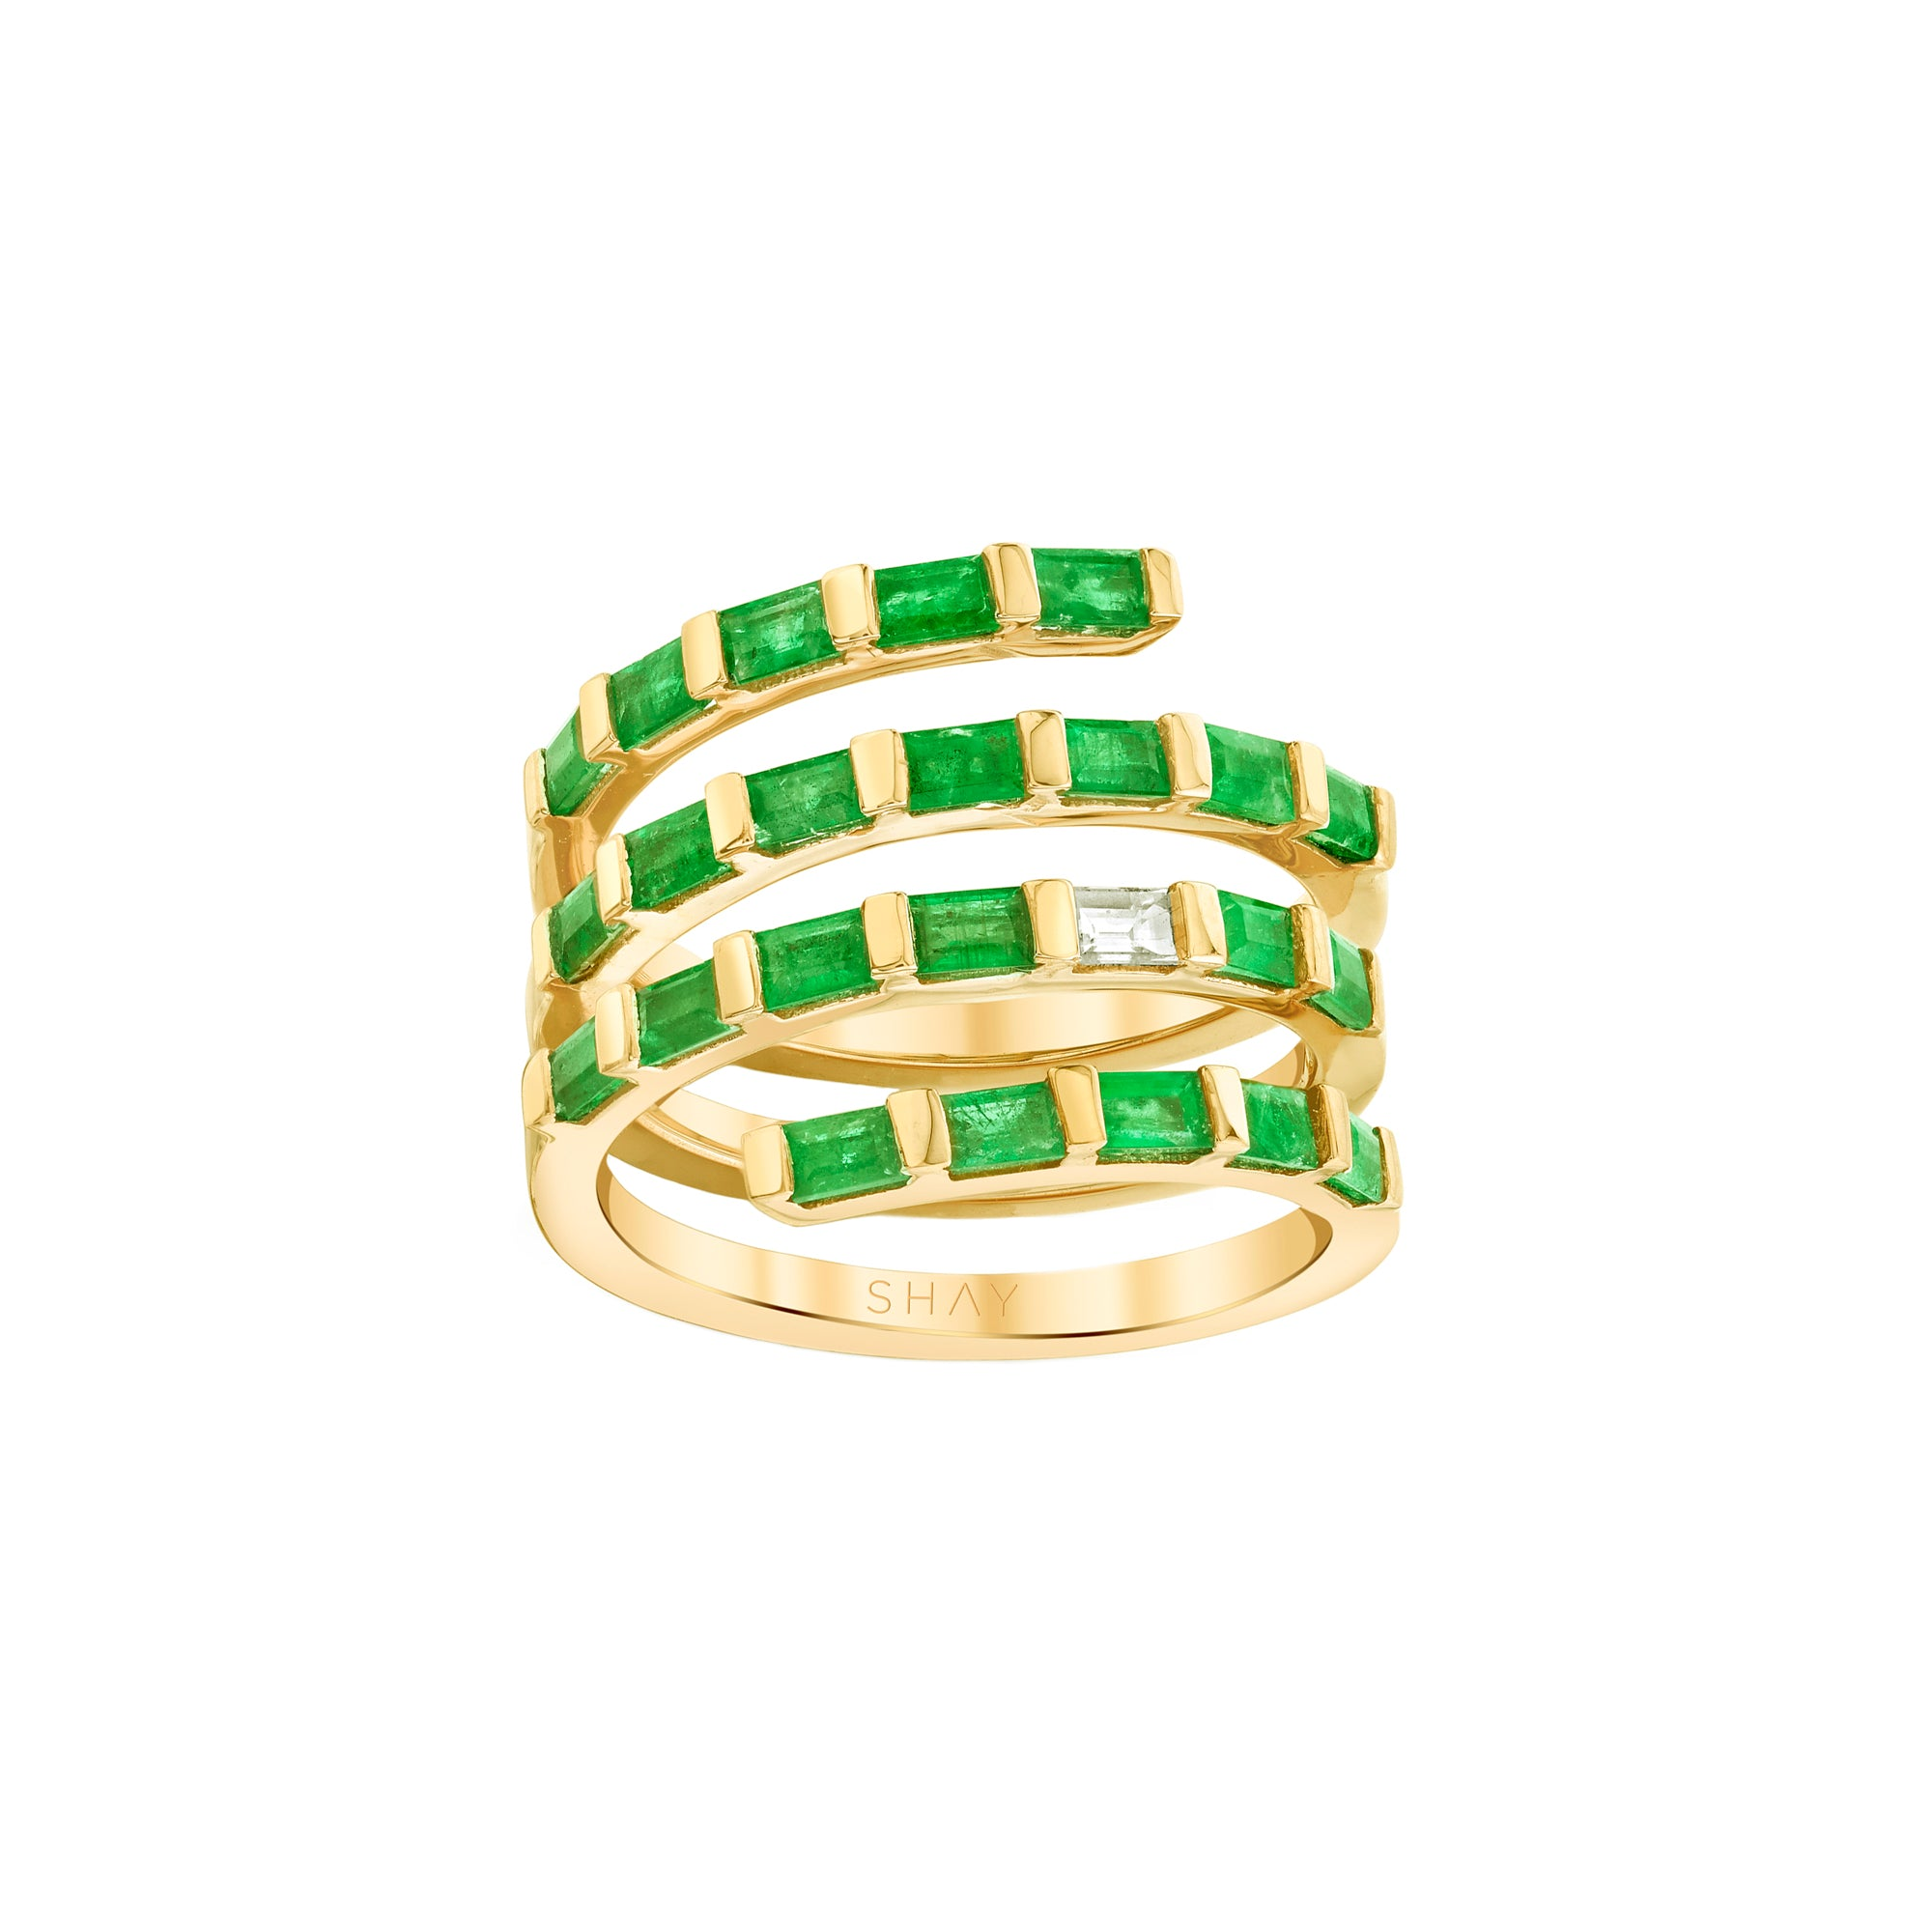 Shay Emerald & Diamond Quad Spiral Ring - Gold - Rings - Broken English Jewelry